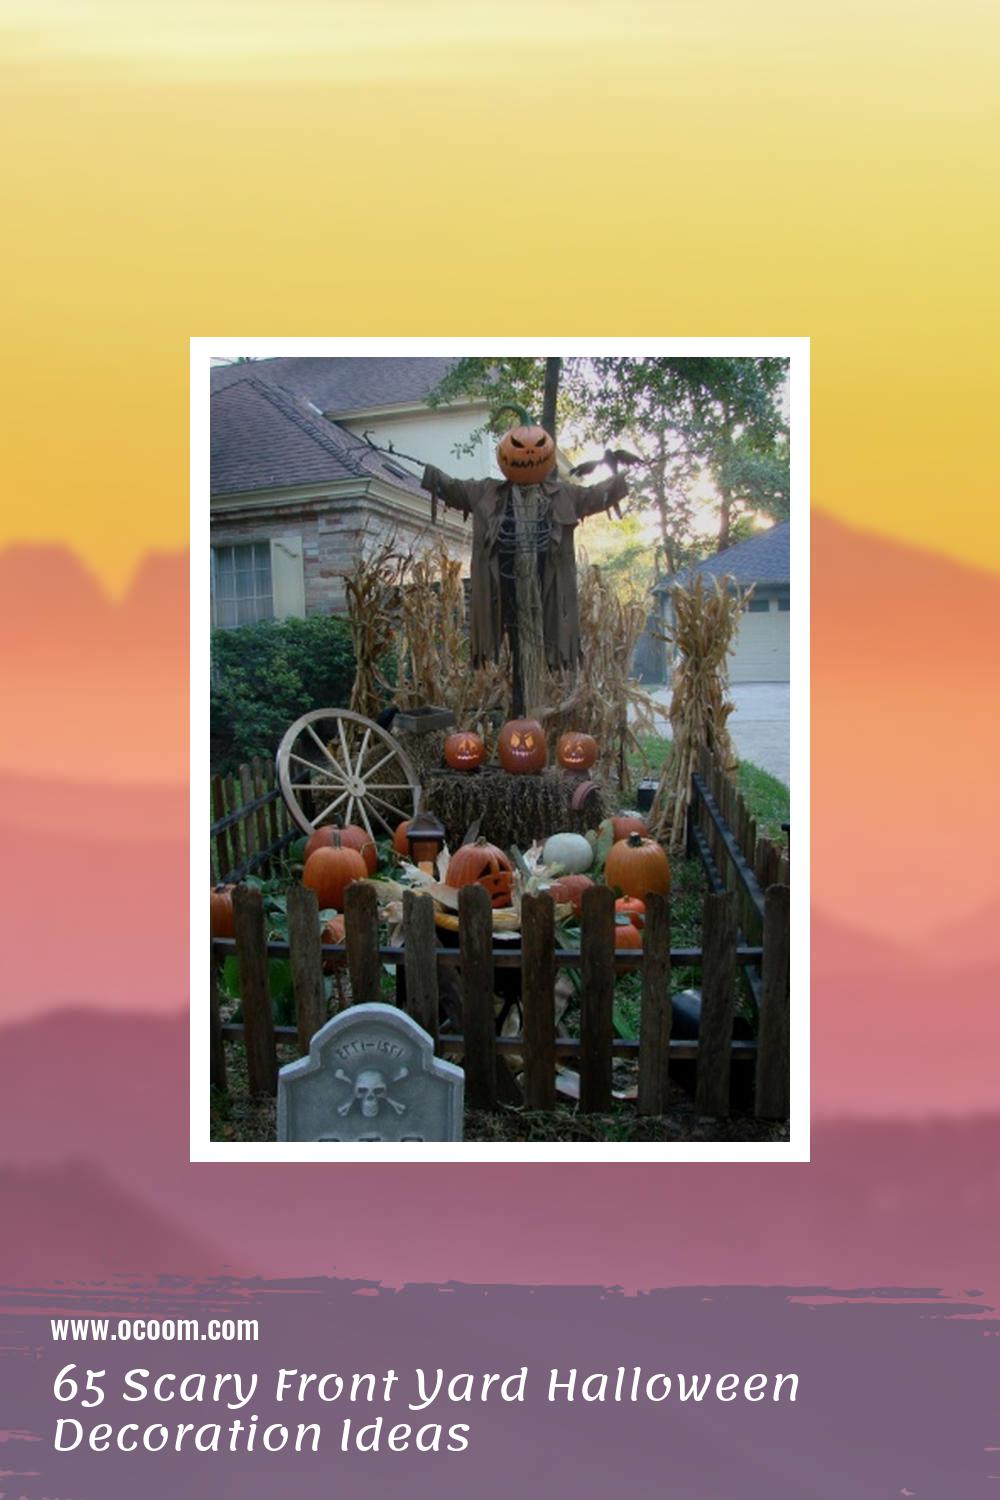 65 Scary Front Yard Halloween Decoration Ideas 57